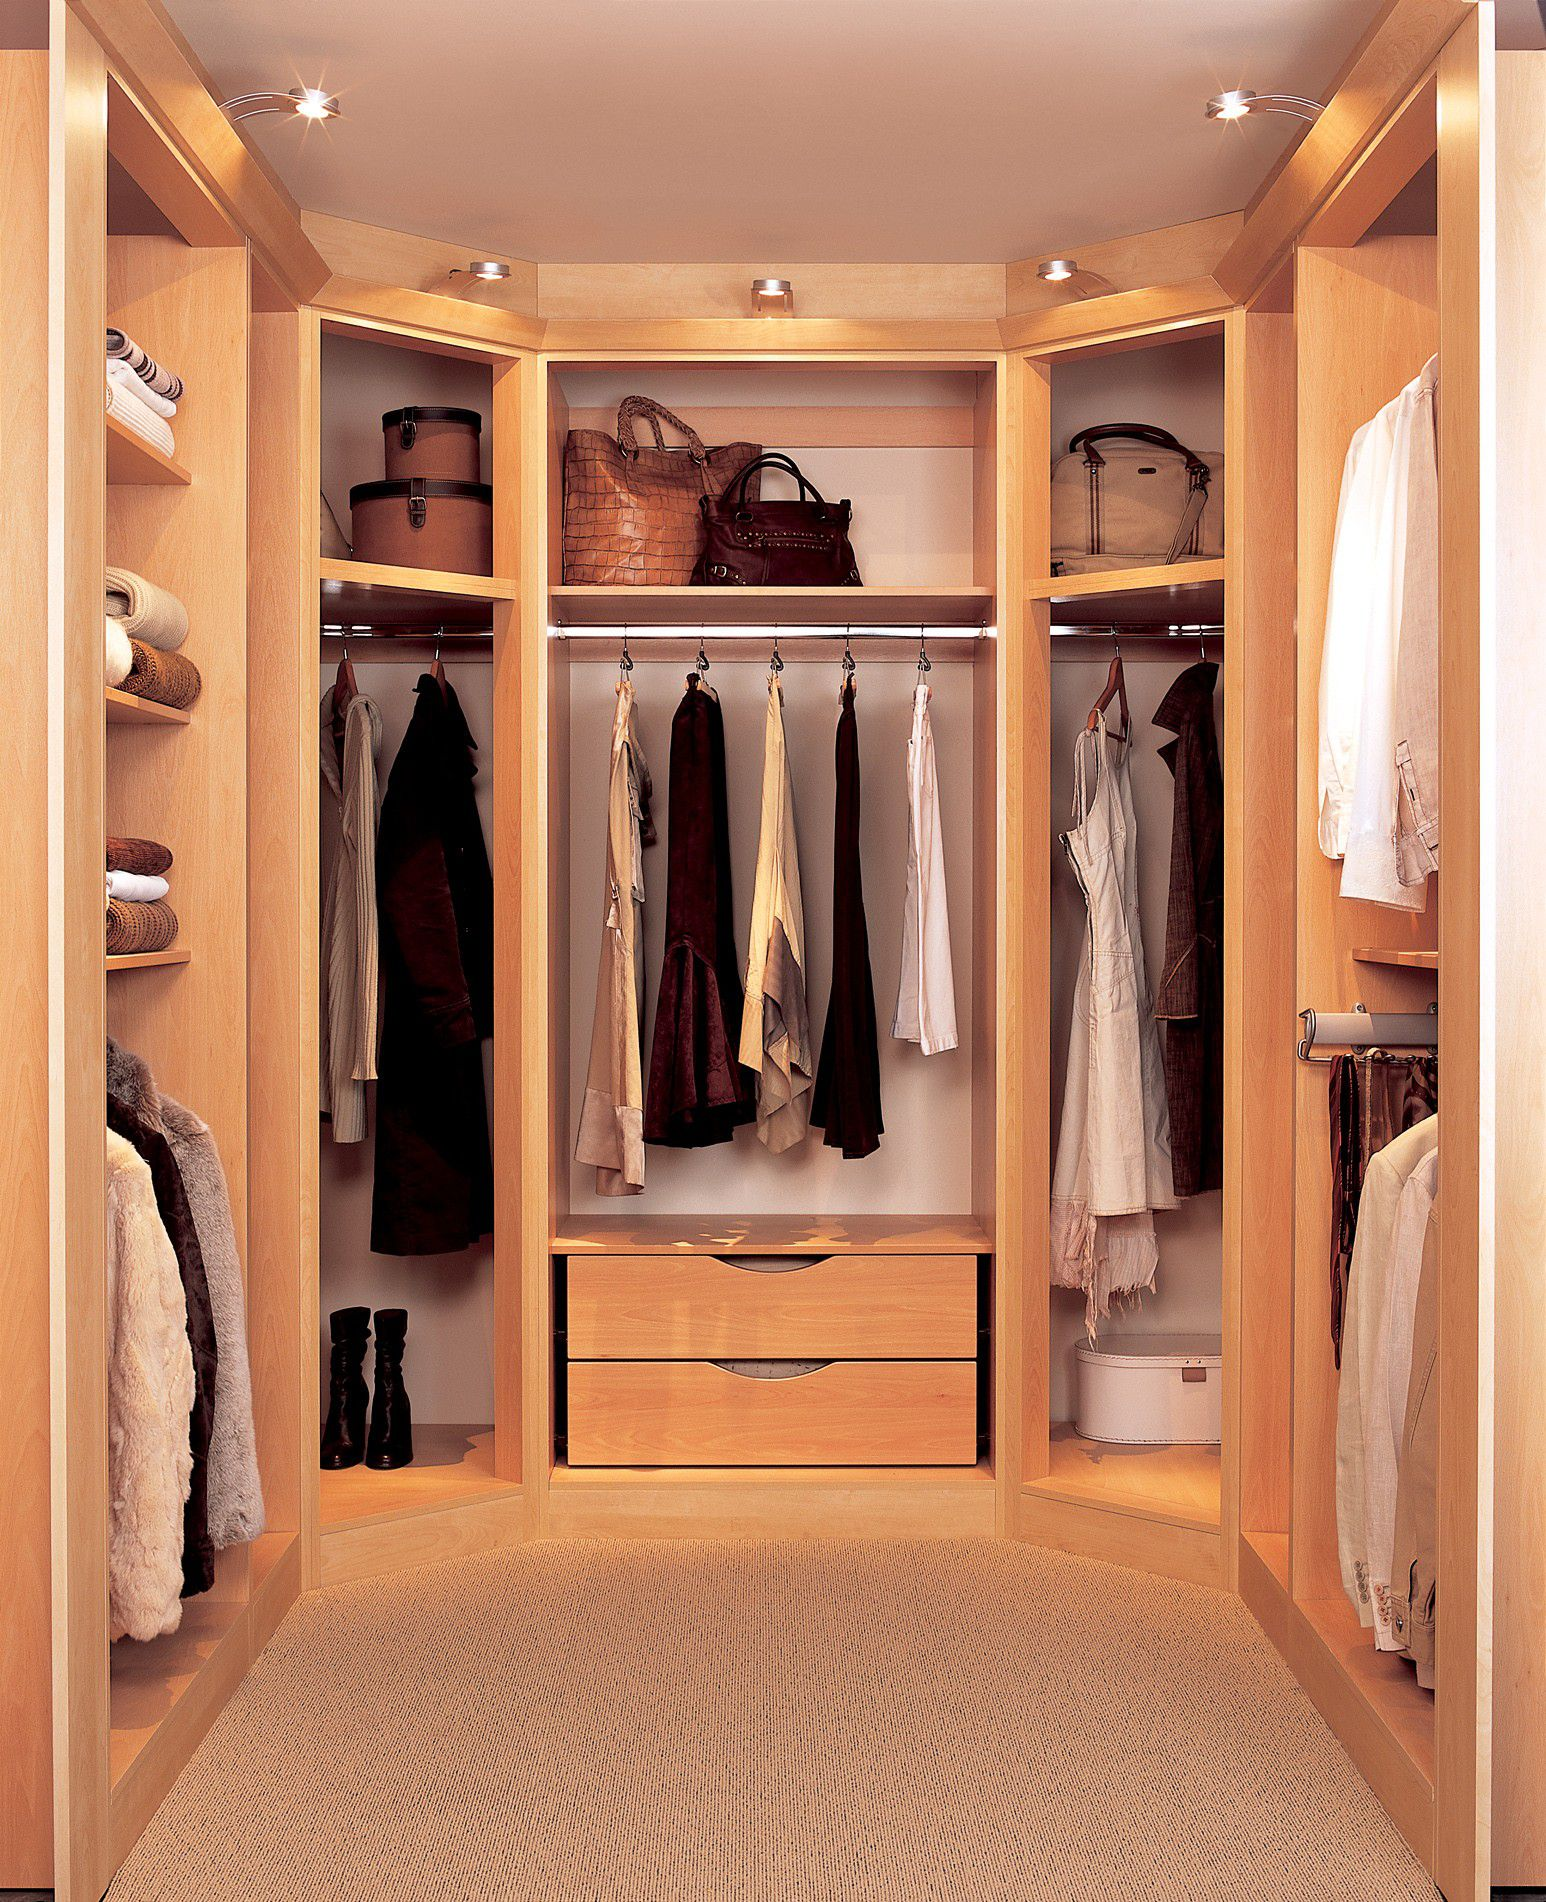 Minimalist Closet Storage Ideas For Small Walk In Closet With Oak Drawers  And Shelves